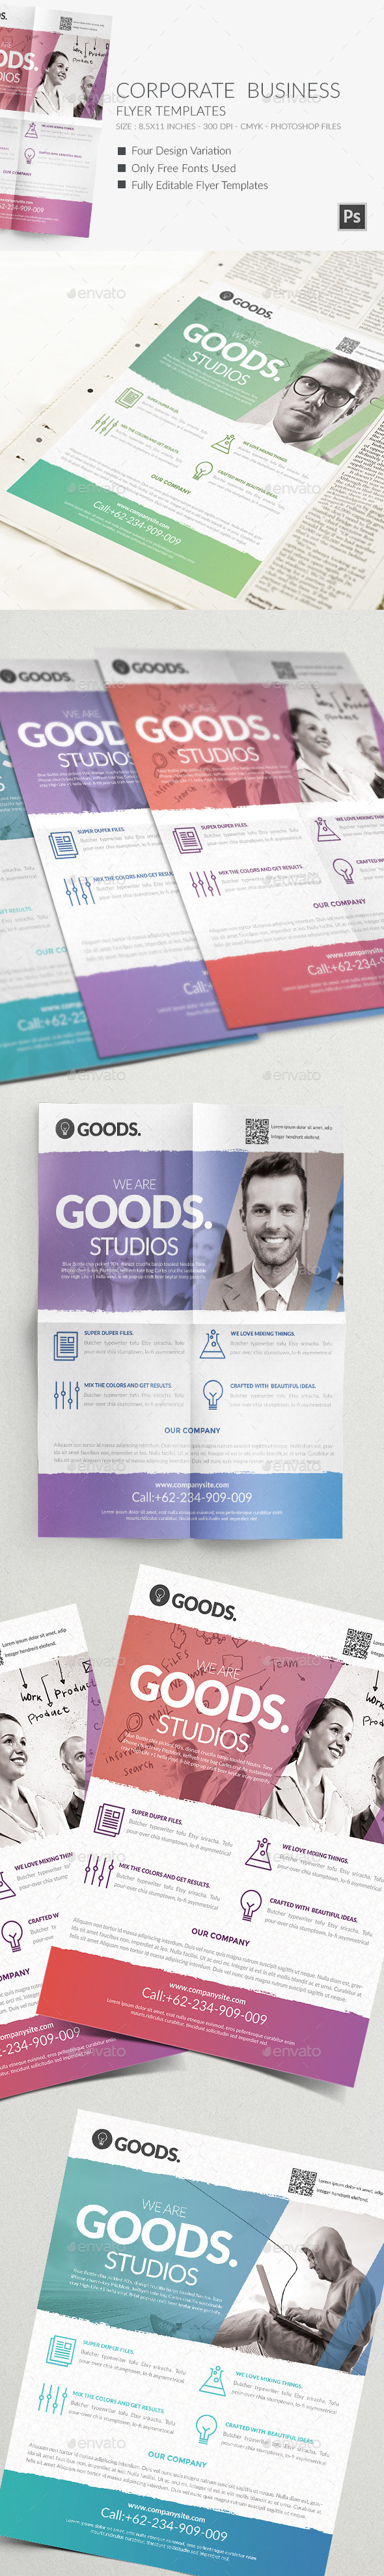 Corporate  Business Flyer Templates 2 - Corporate Flyers